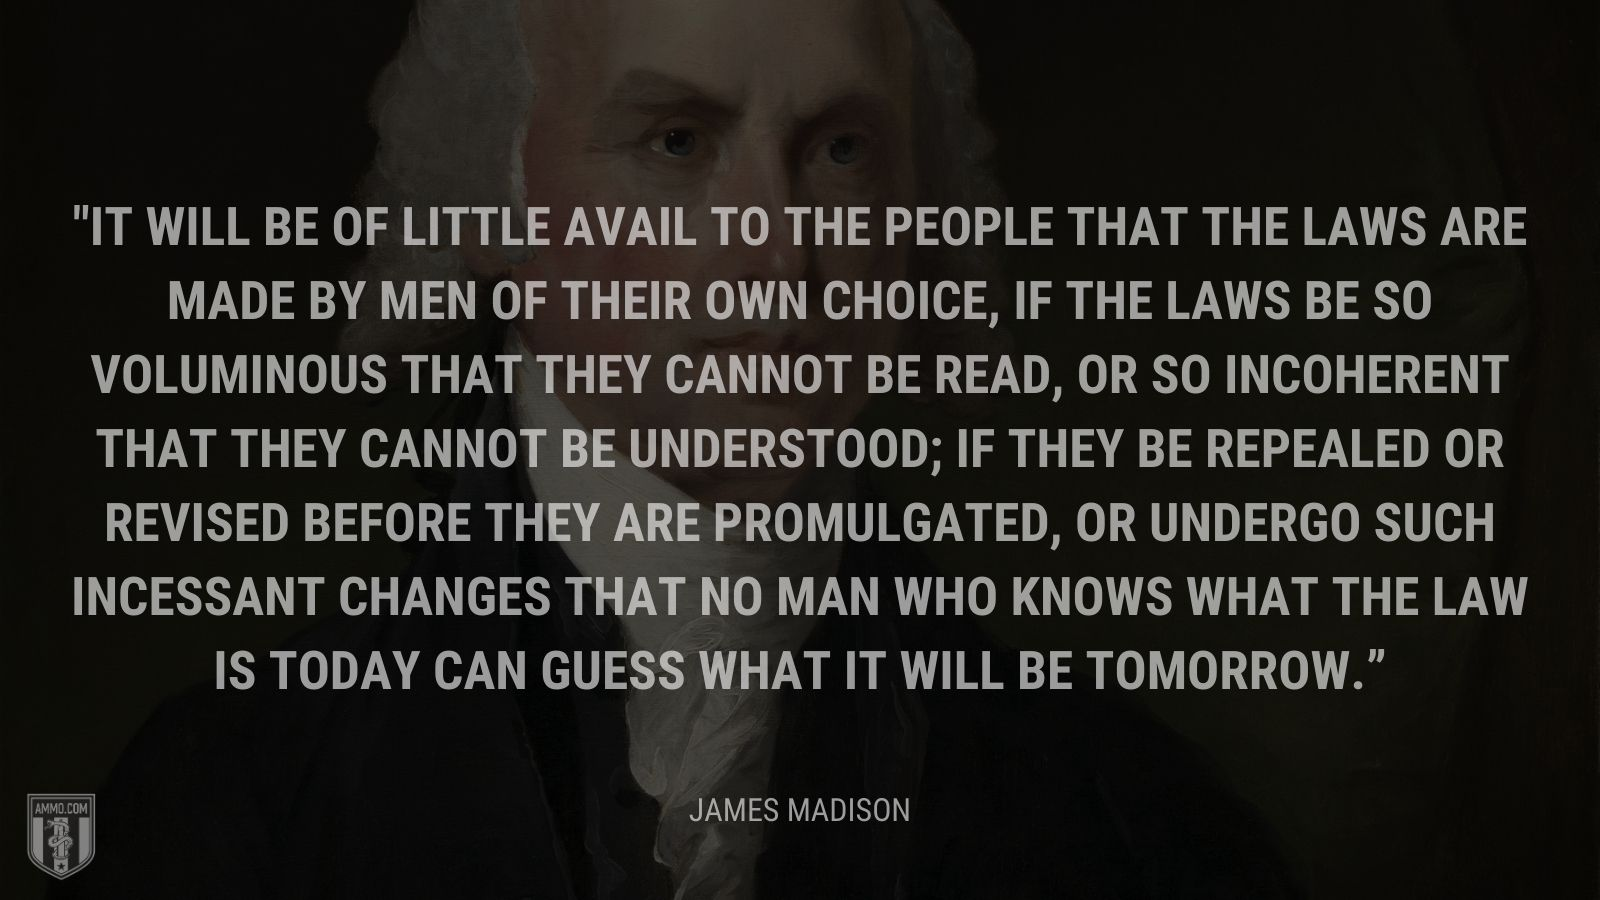 """It will be of little avail to the people that the laws are made by men of their own choice, if the laws be so voluminous that they cannot be read, or so incoherent that they cannot be understood; if they be repealed or revised before they are promulgated, or undergo such incessant changes that no man who knows what the law is today can guess what it will be tomorrow."" - James Madison"